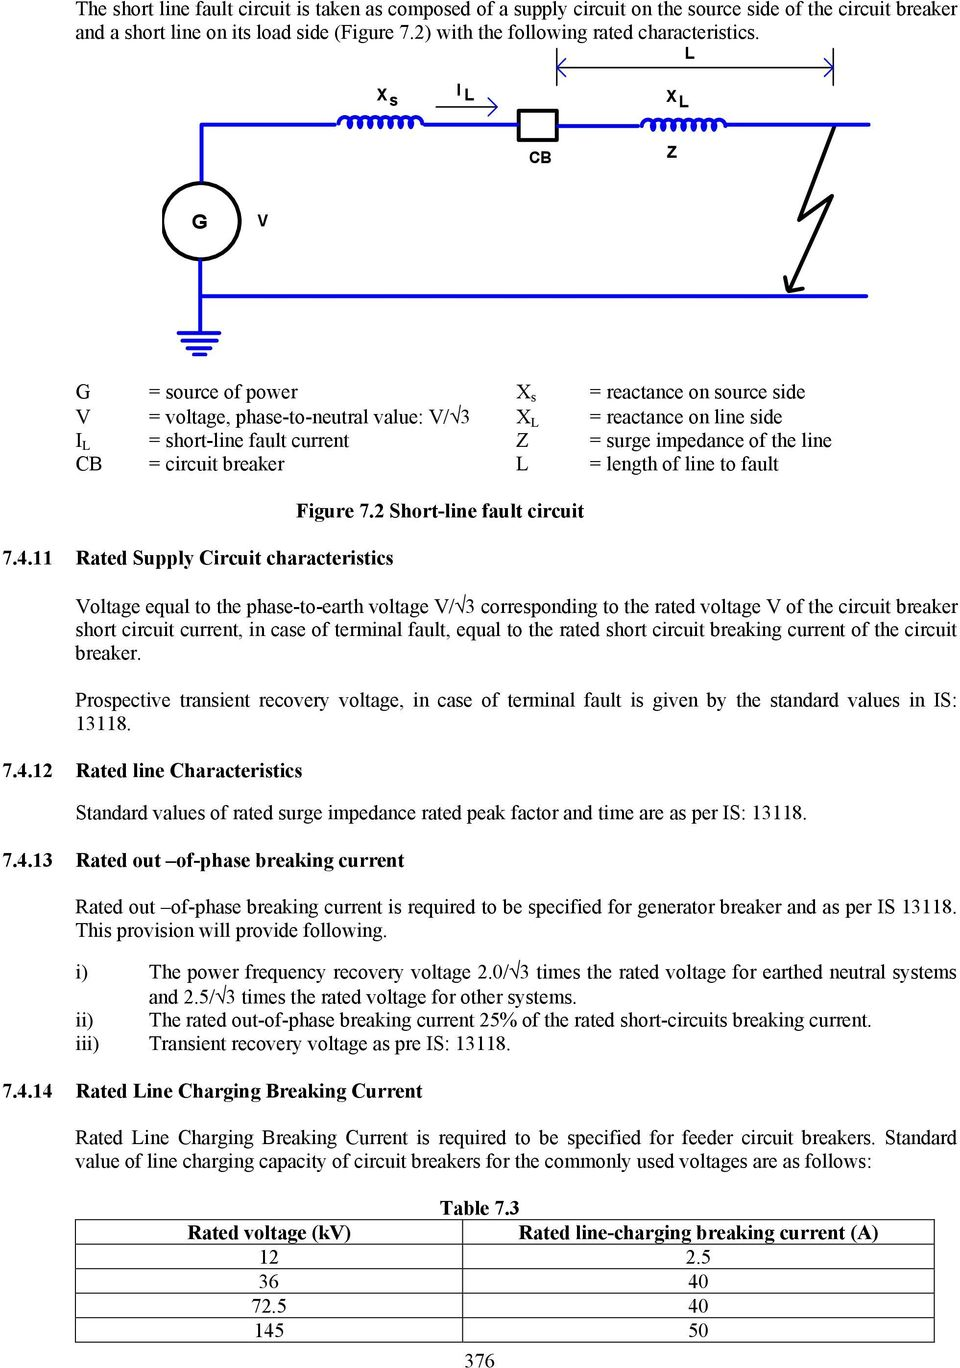 Chapter 7 High Voltage Circuit Breaker Pdf Line The Cb L Length Of To Fault 7411